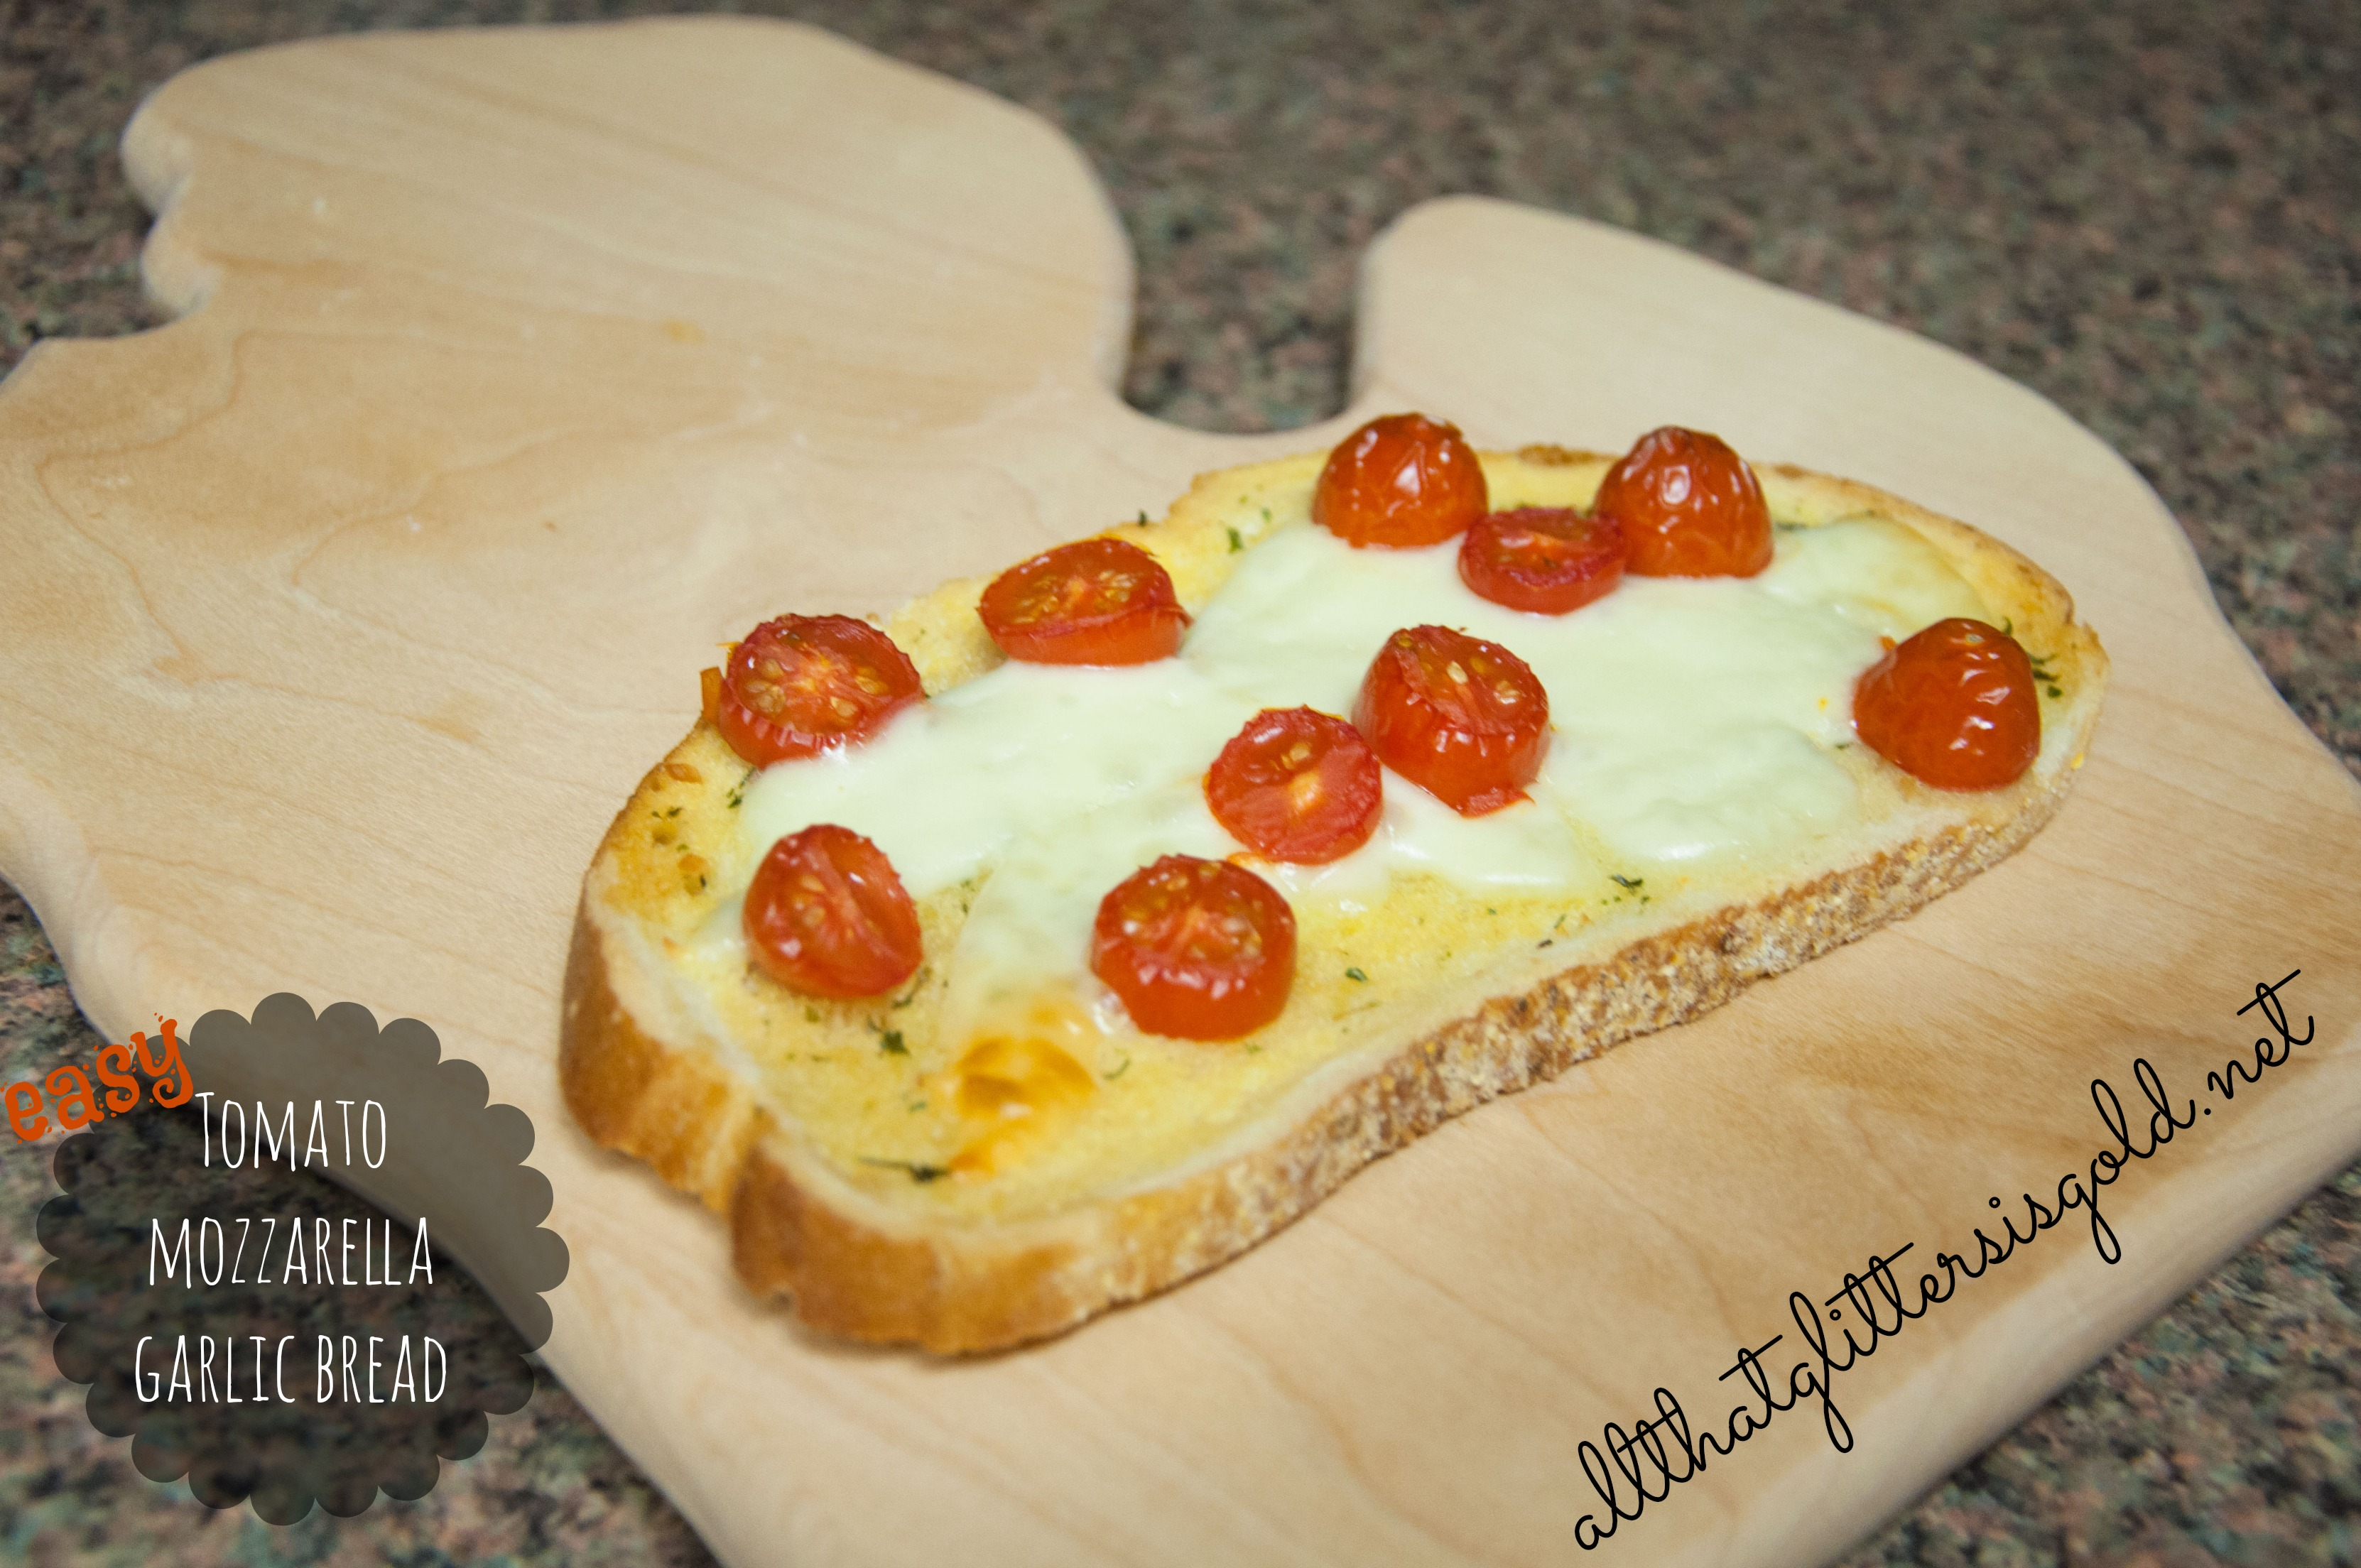 Garlic bread with mozzarella and tomatoes